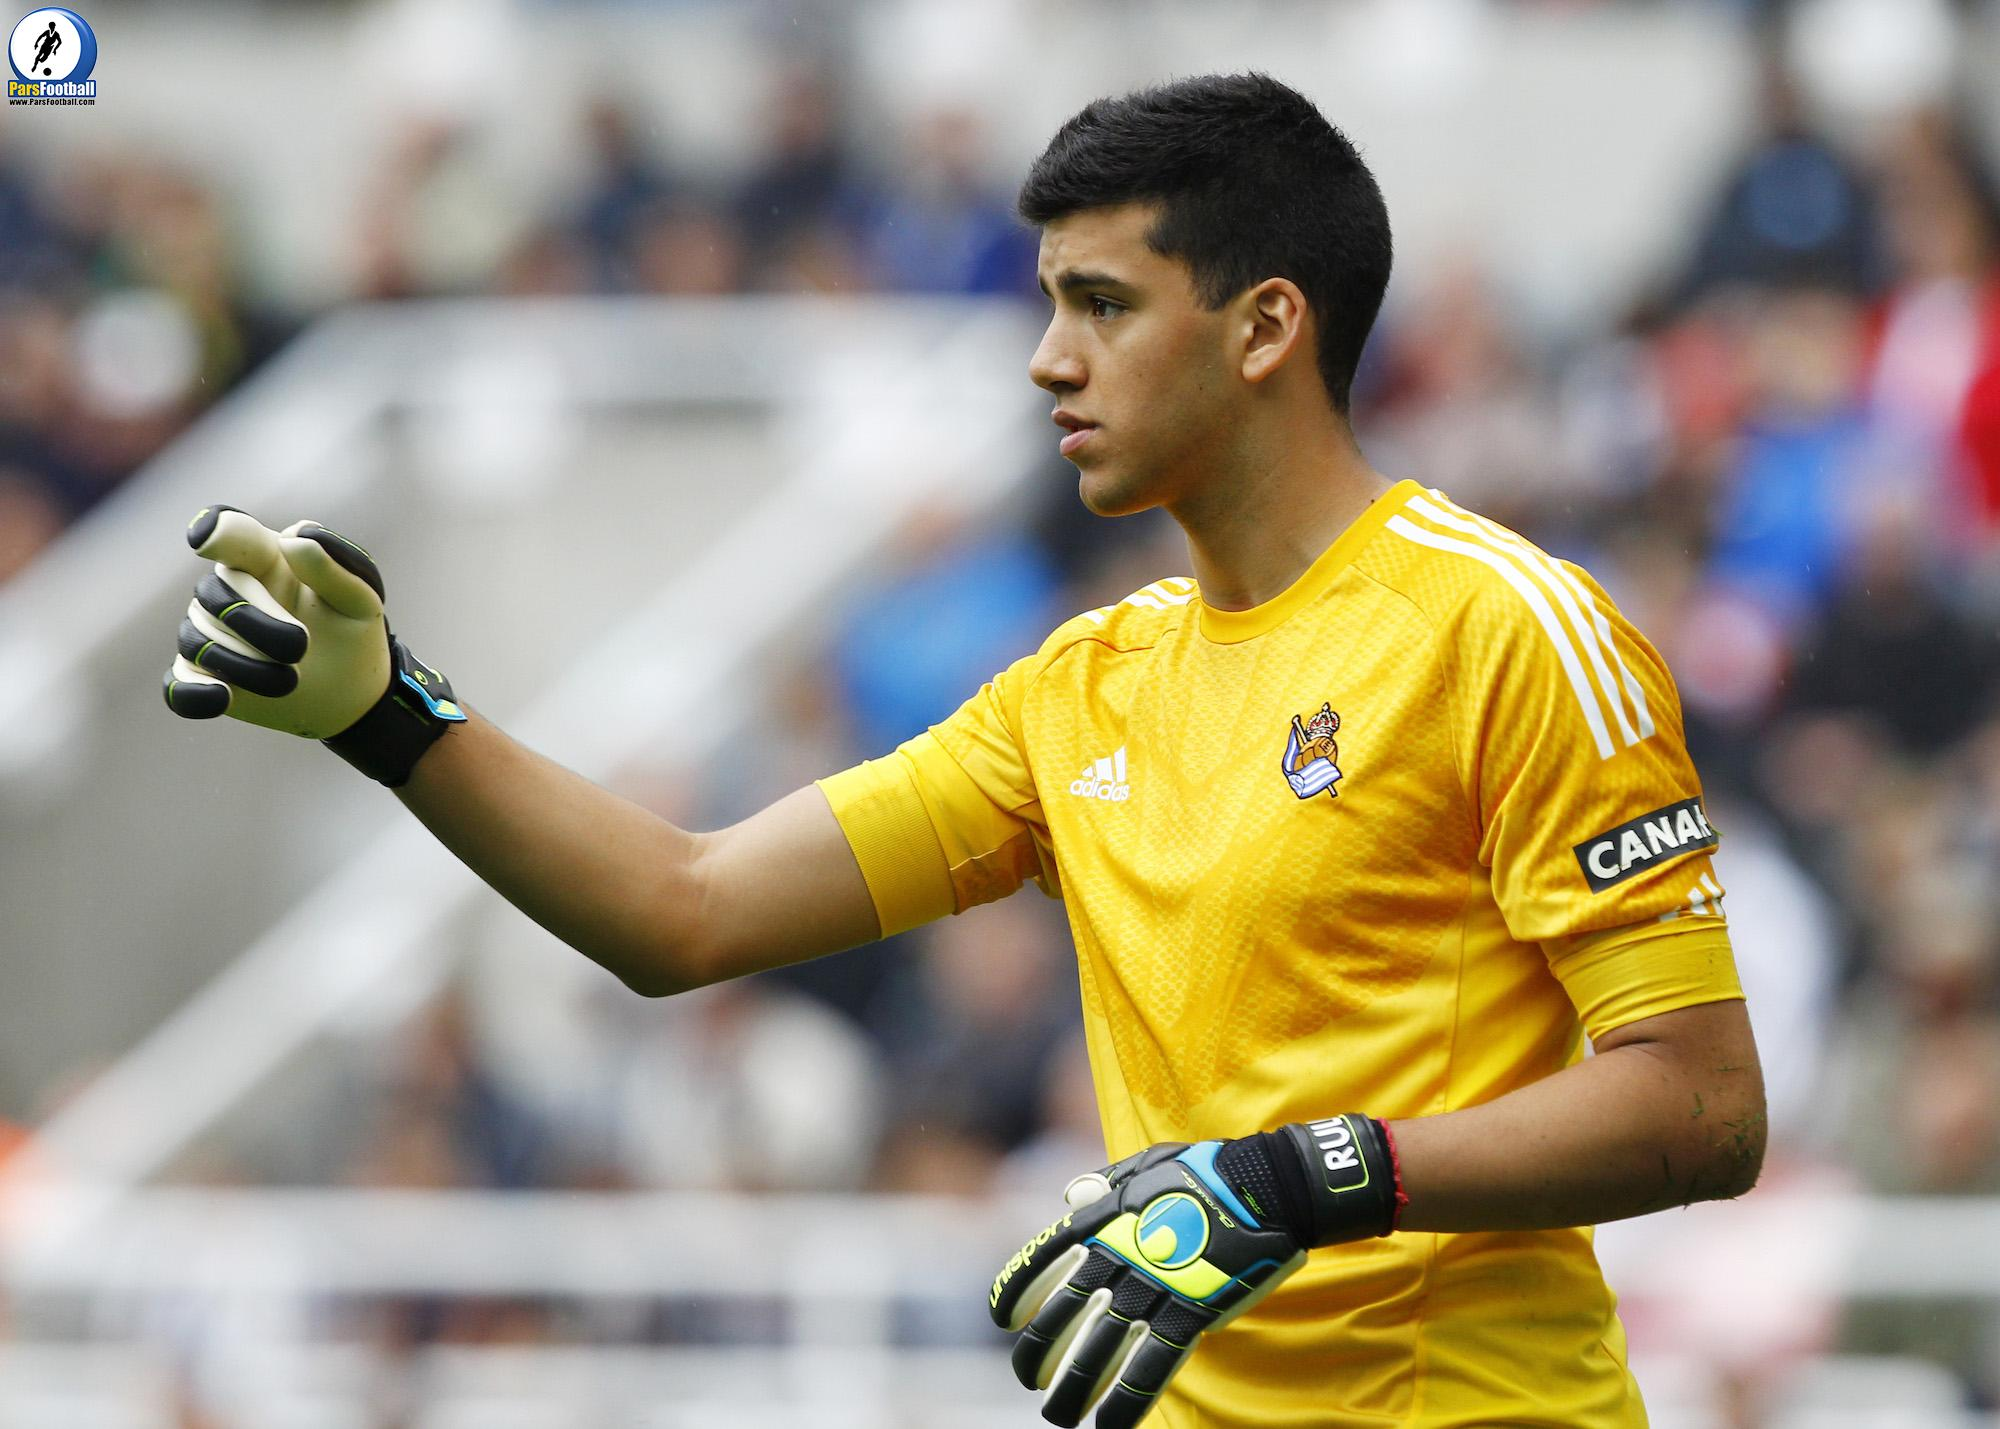 Football - Newcastle United v Real Sociedad - Pre Season Friendly - St James' Park - 14/15 - 10/8/14 Geronimo Rulli - Real Sociedad    Mandatory Credit: Action Images / Craig Brough  EDITORIAL USE ONLY.